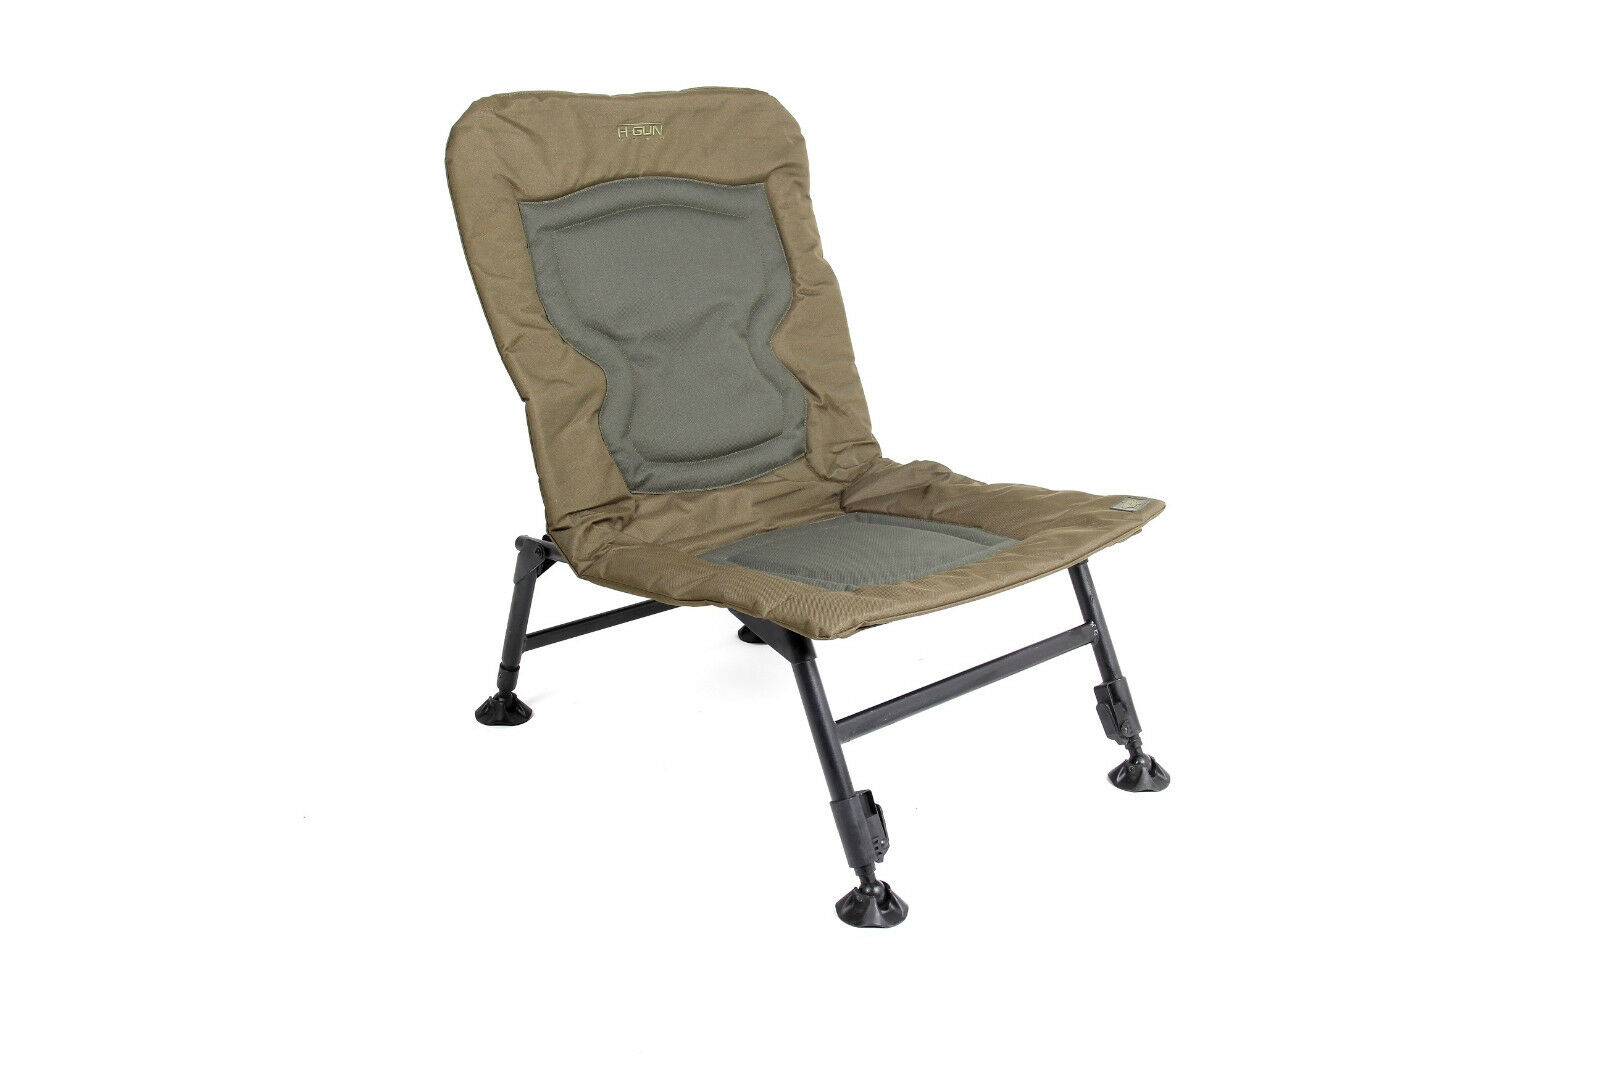 Nash H-Gun Standard Chair T4400 Stuhl Karpfenstuhl Sitz Angelsitz Carp Chair